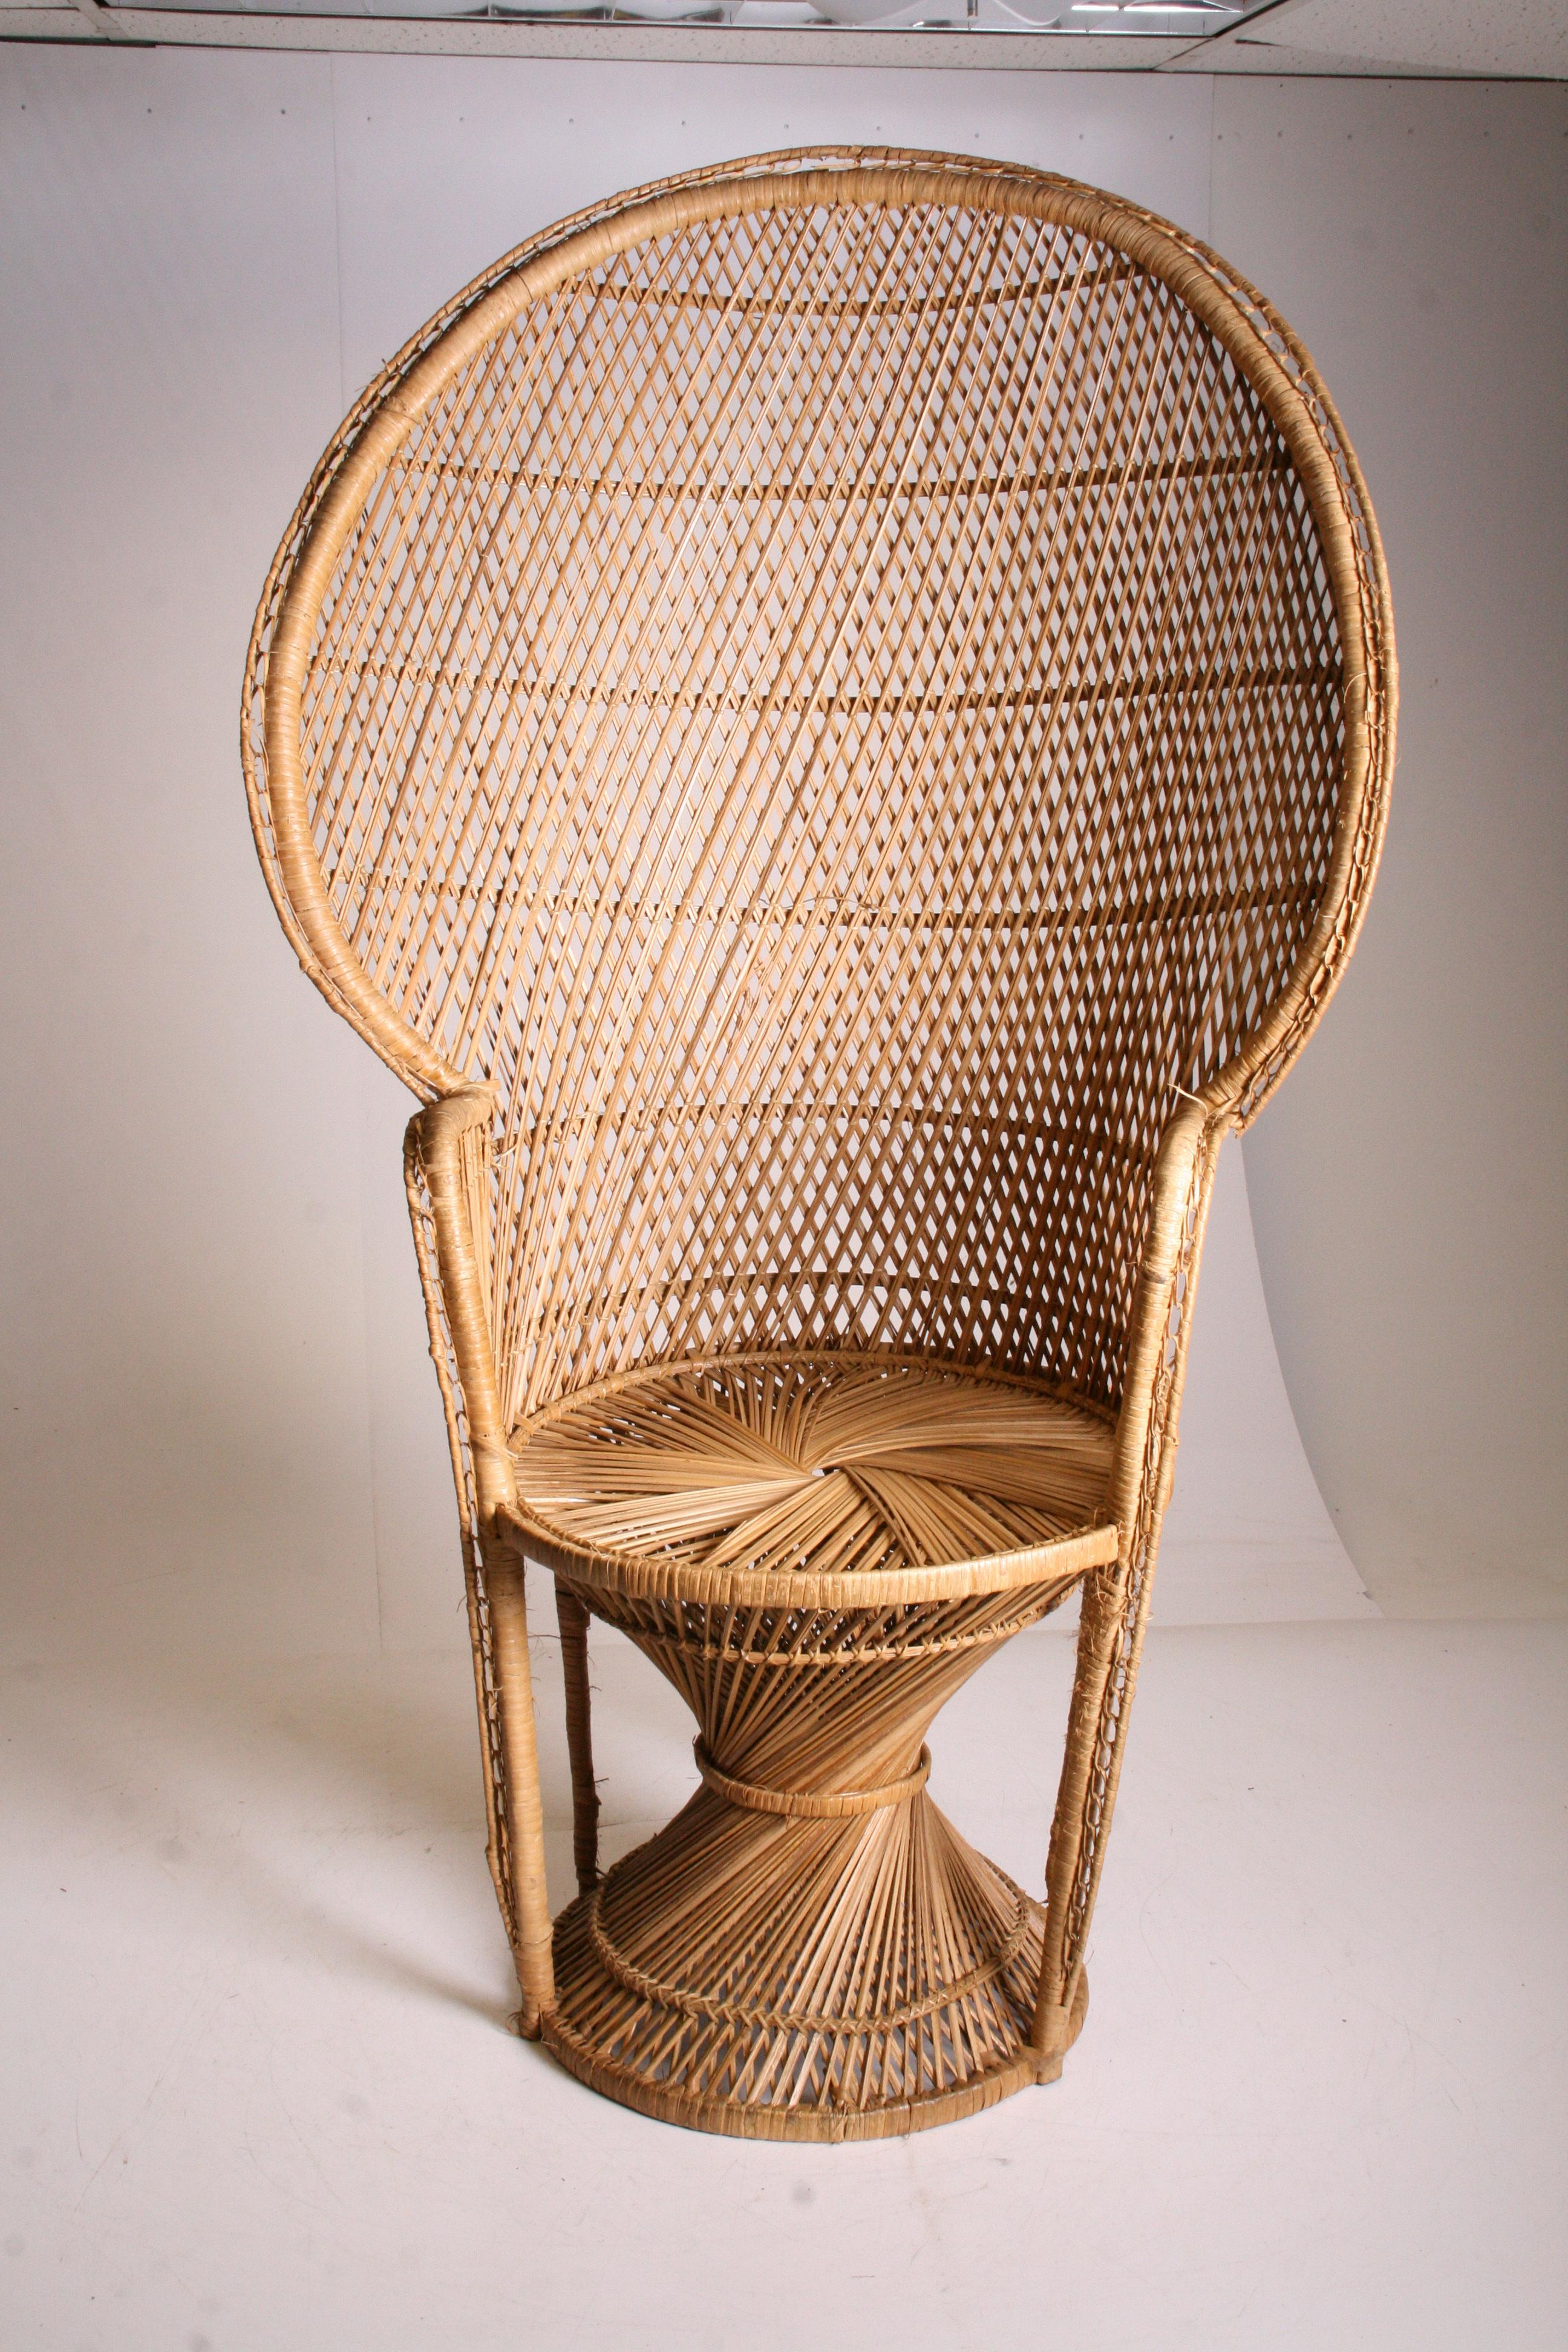 Vintage Boho Chic Wicker Peacock Chair   Image 2 Of 11